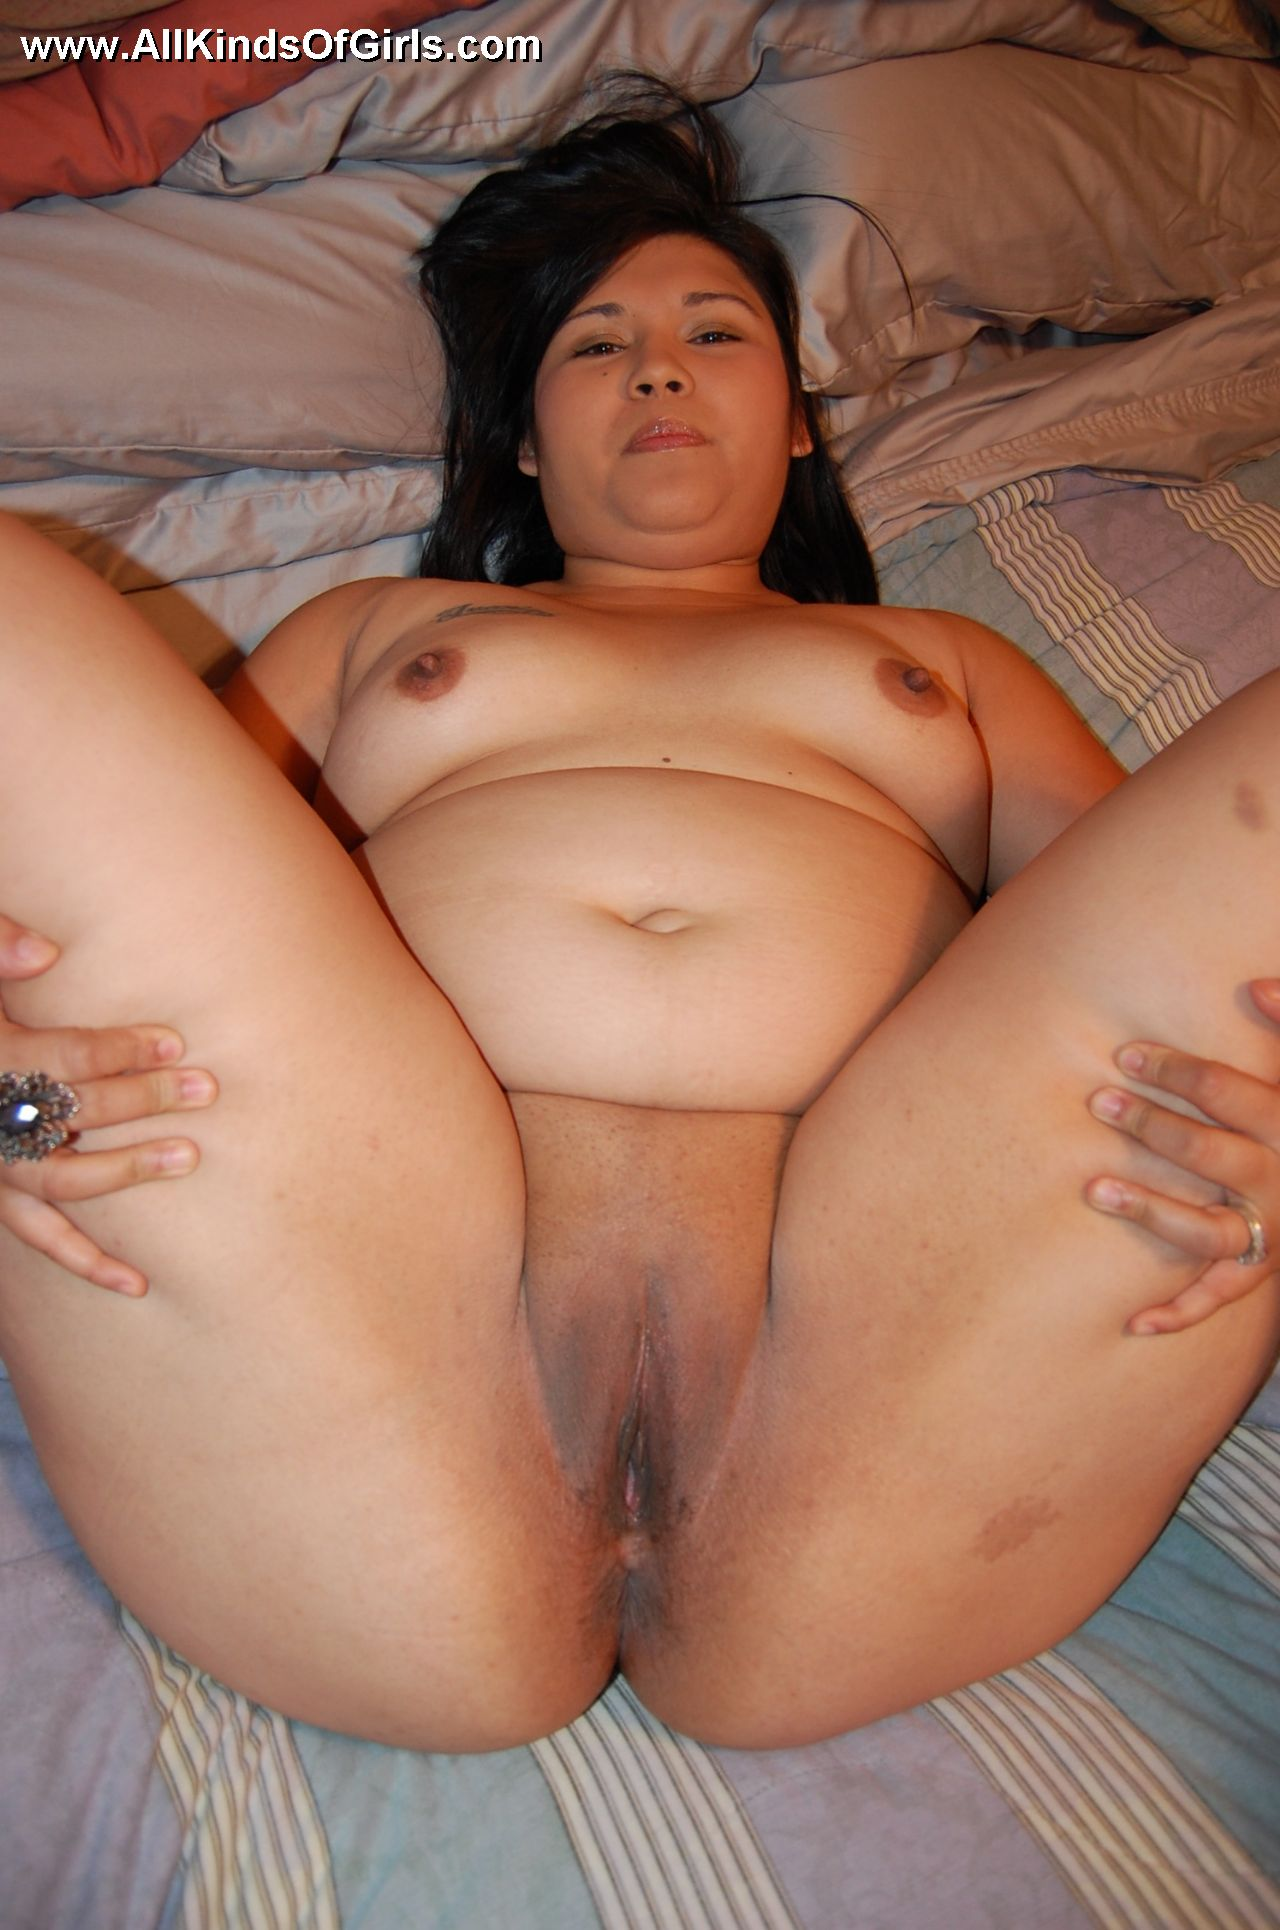 filipina nude chubby girls